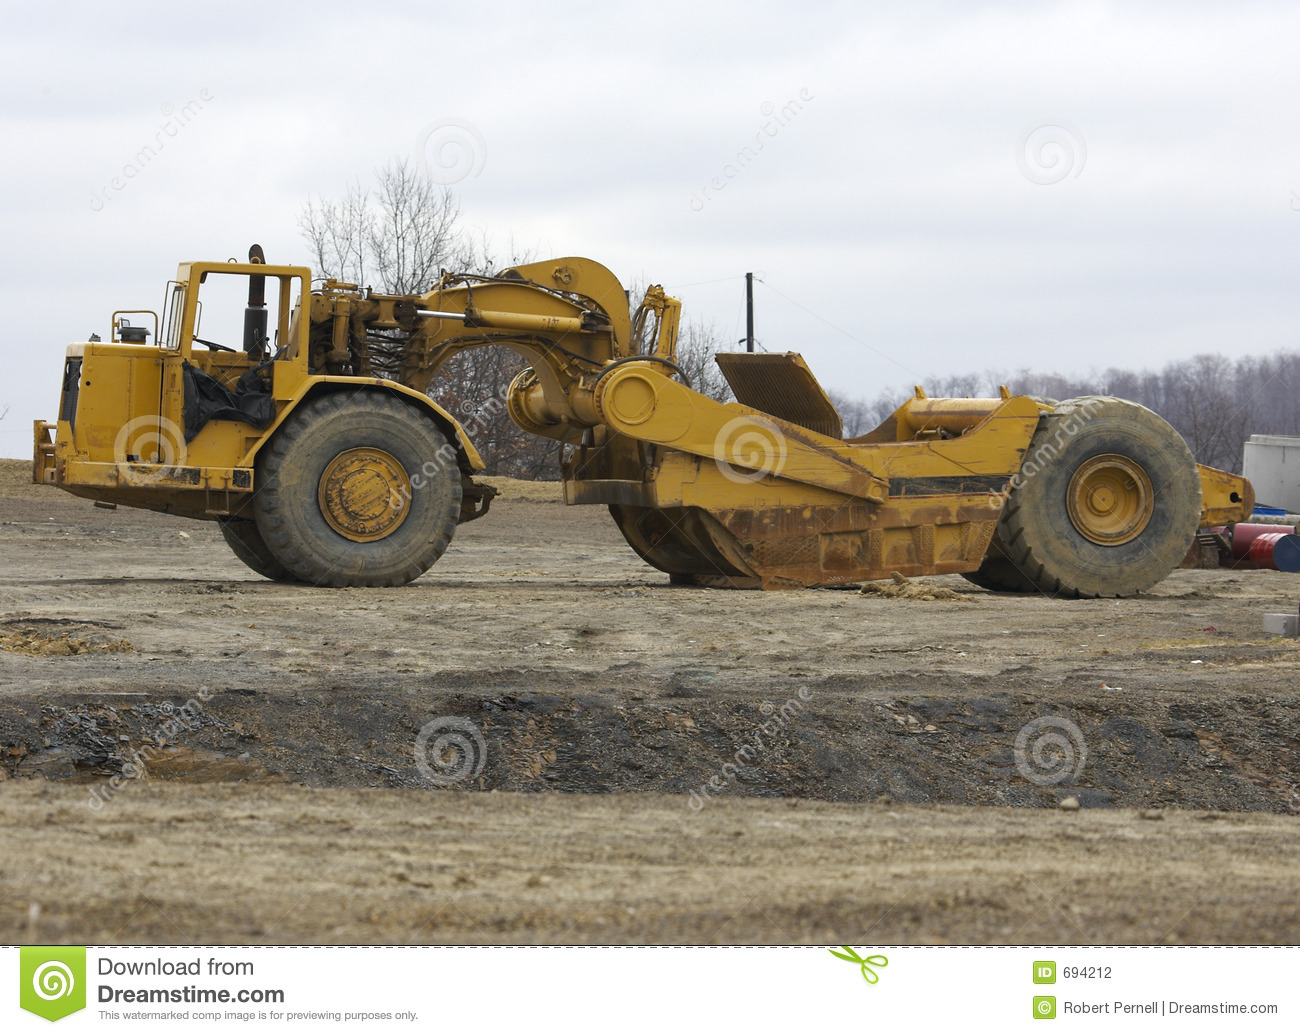 Industrial Scraper Stock Photography - Image: 694212